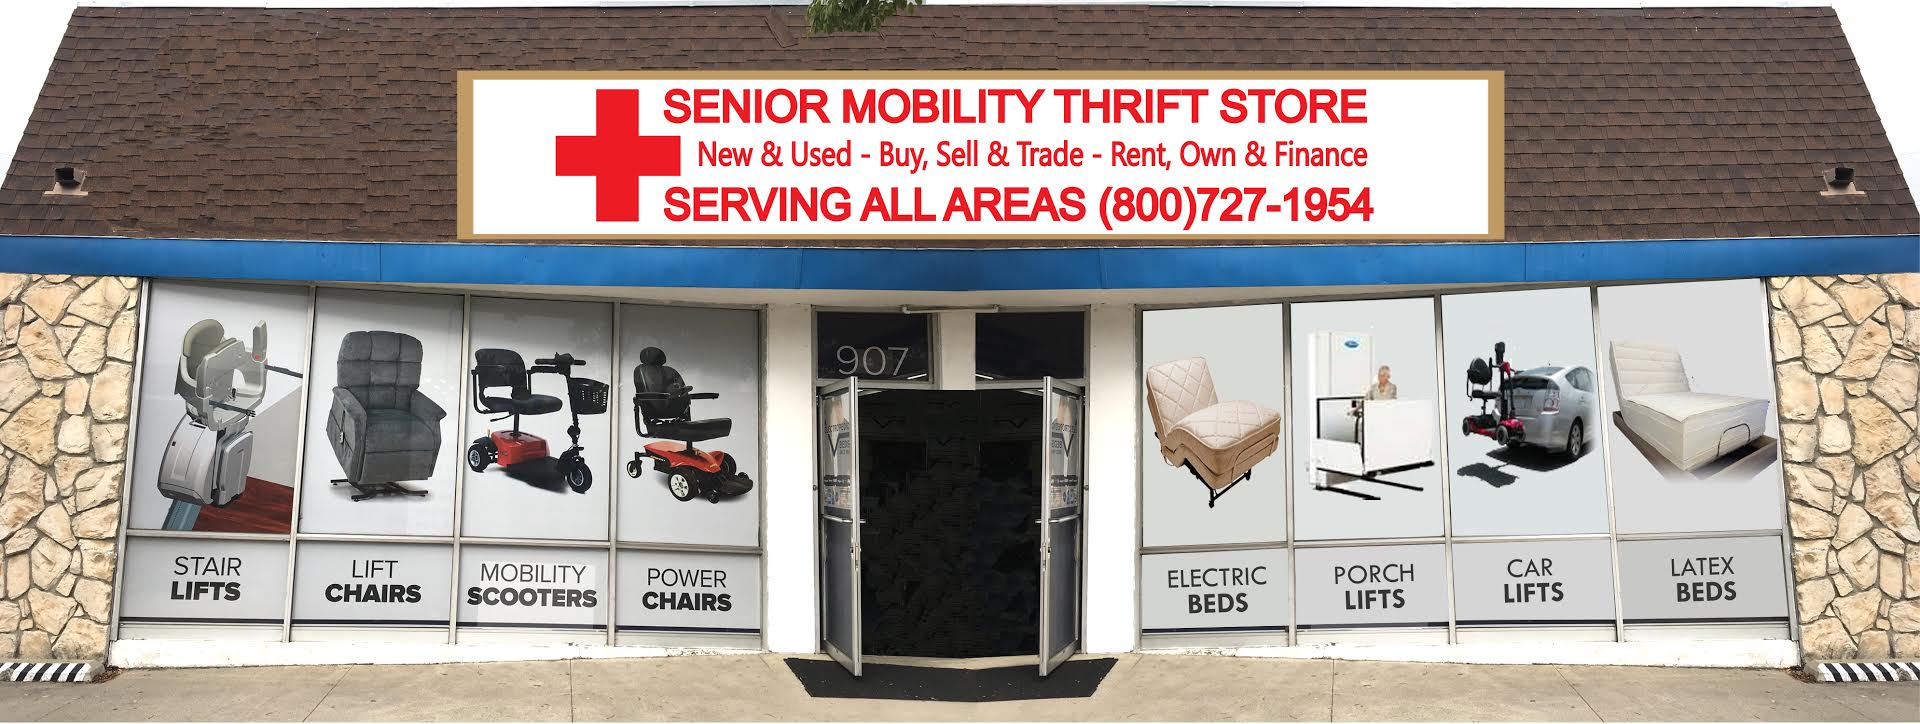 phoenix senior mobility thrift store scottsdale affordable stairlifts mesa cheap stairchair tempe discount chairlift glendale az inexpensive stair lift goodyear sale price stairlifts cost